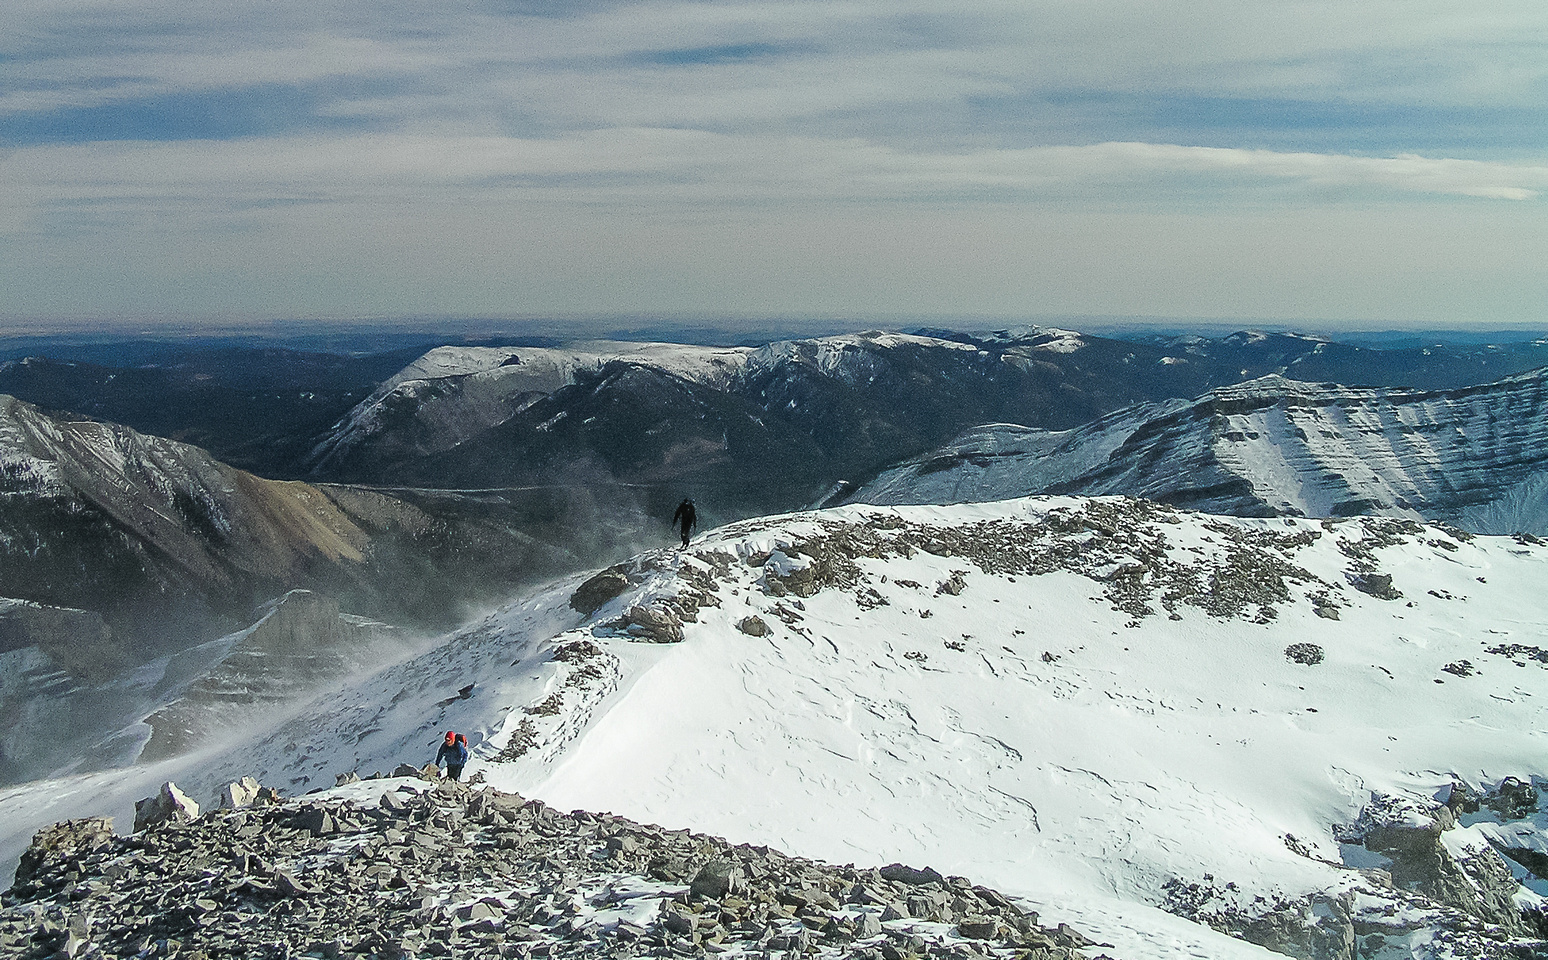 Bill and Gary make their way to the summit of Mount Remus in very strong winds.